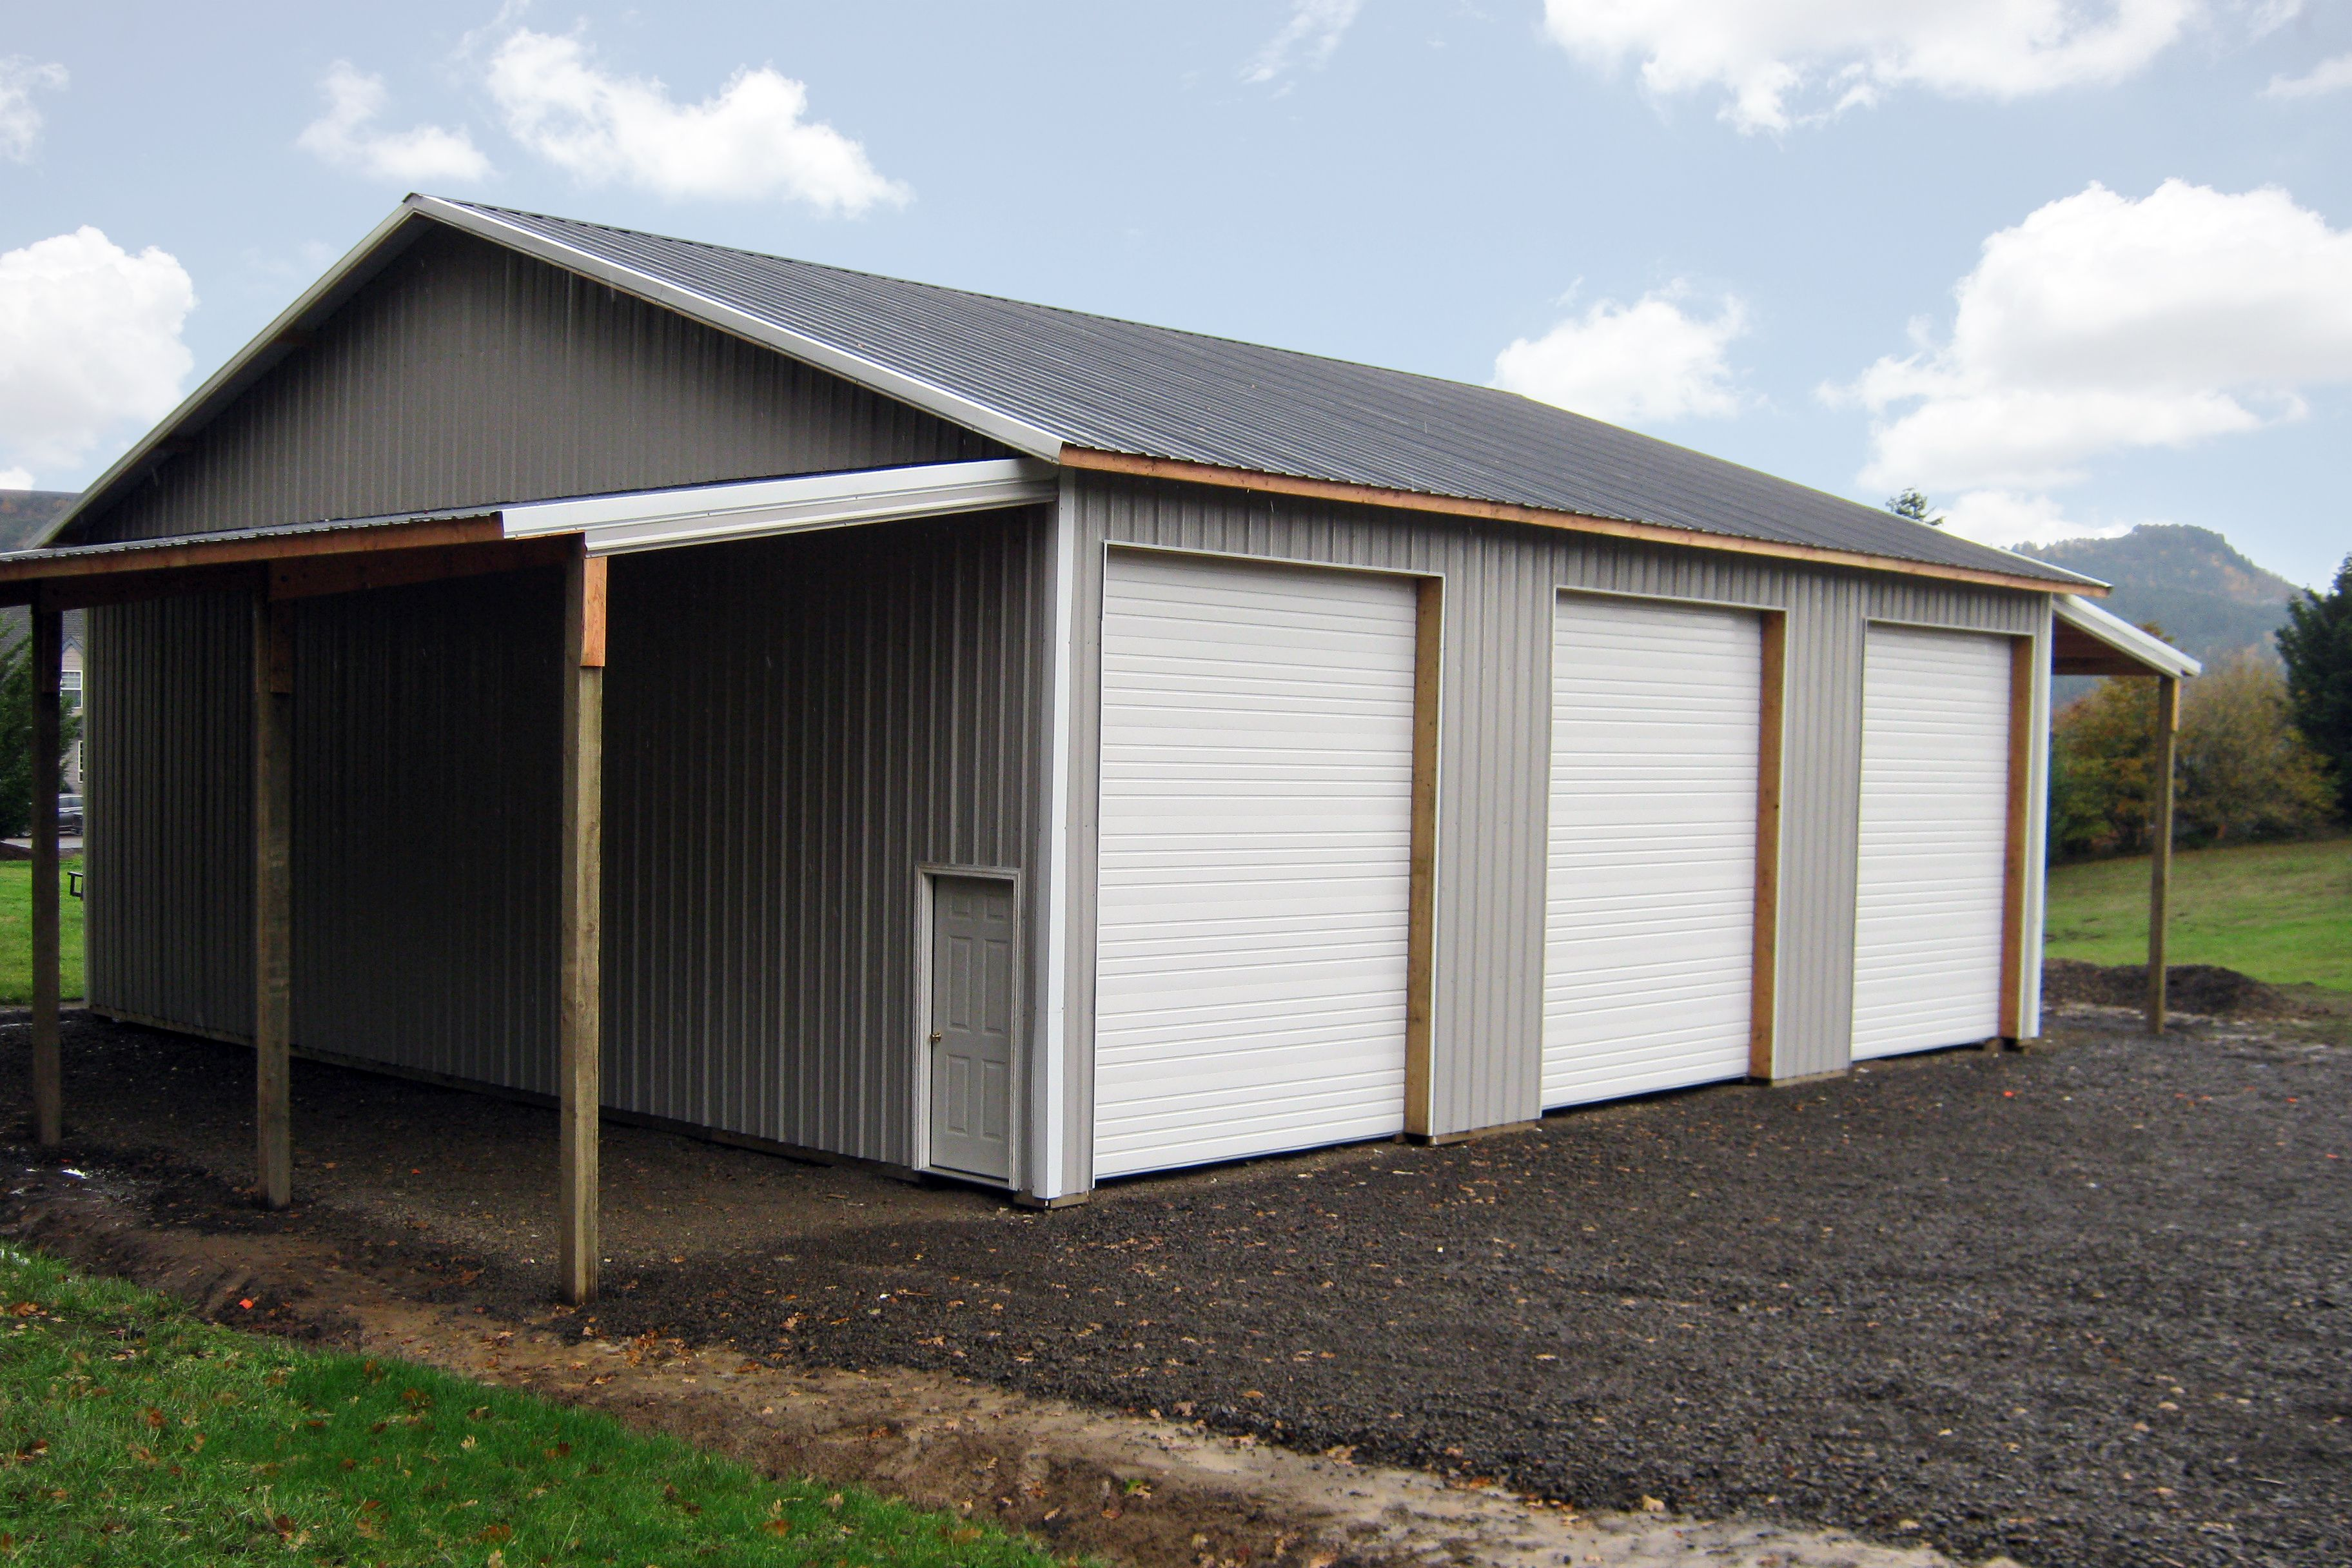 48 X 48 X 16 Pole Building With 3 Overhead Doors And 2 Lean